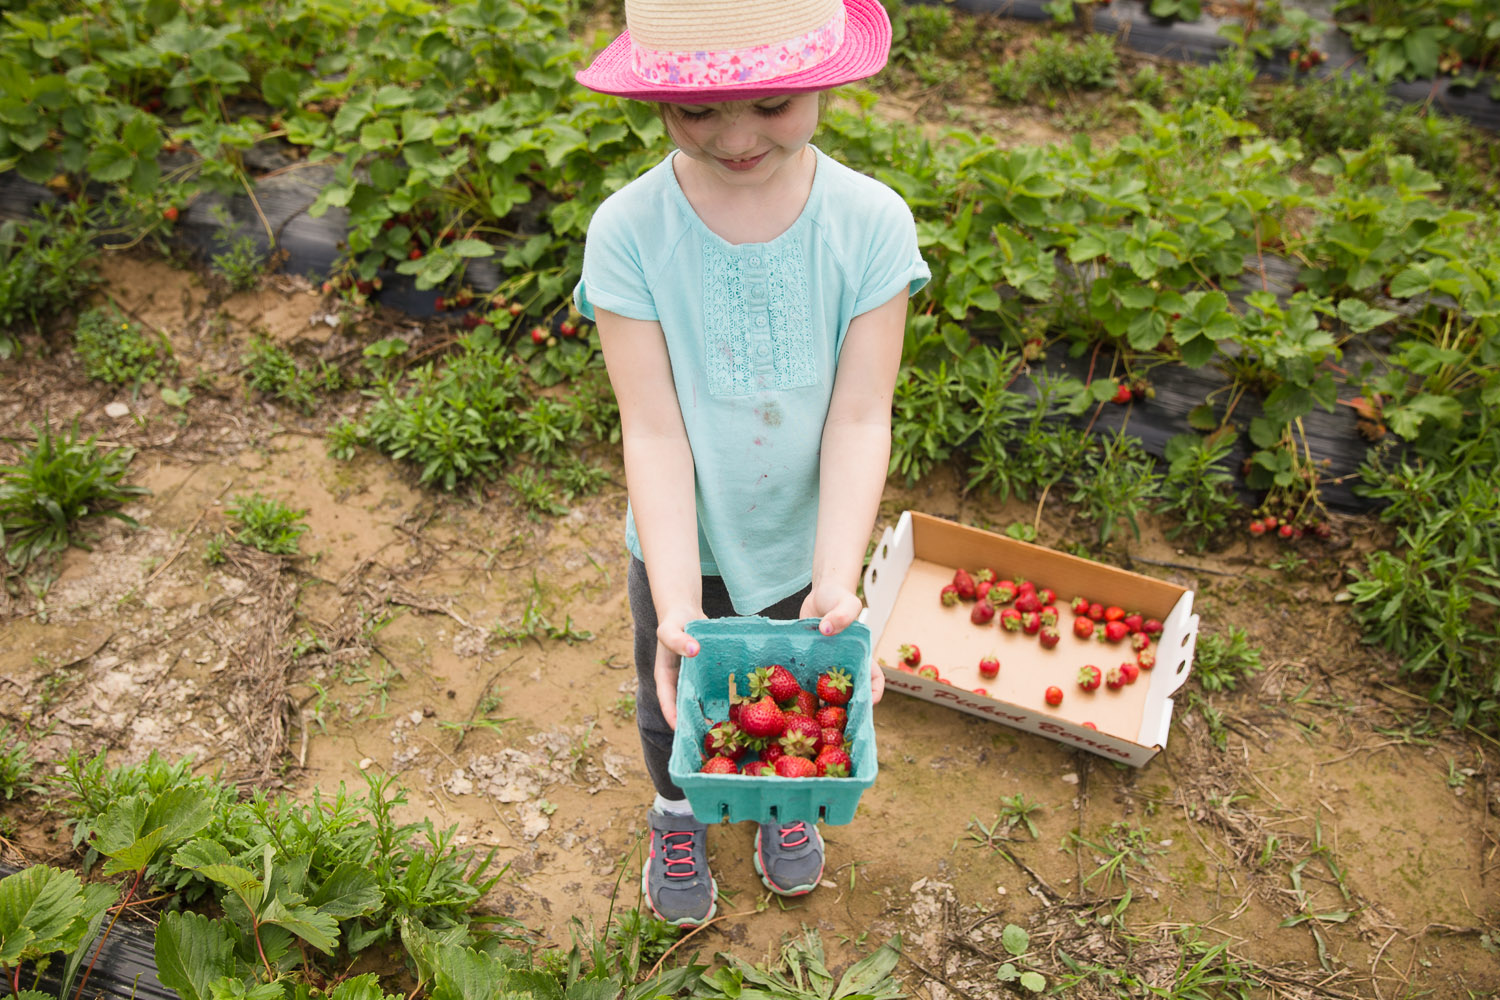 Strawberries-2015-17-ss.jpg